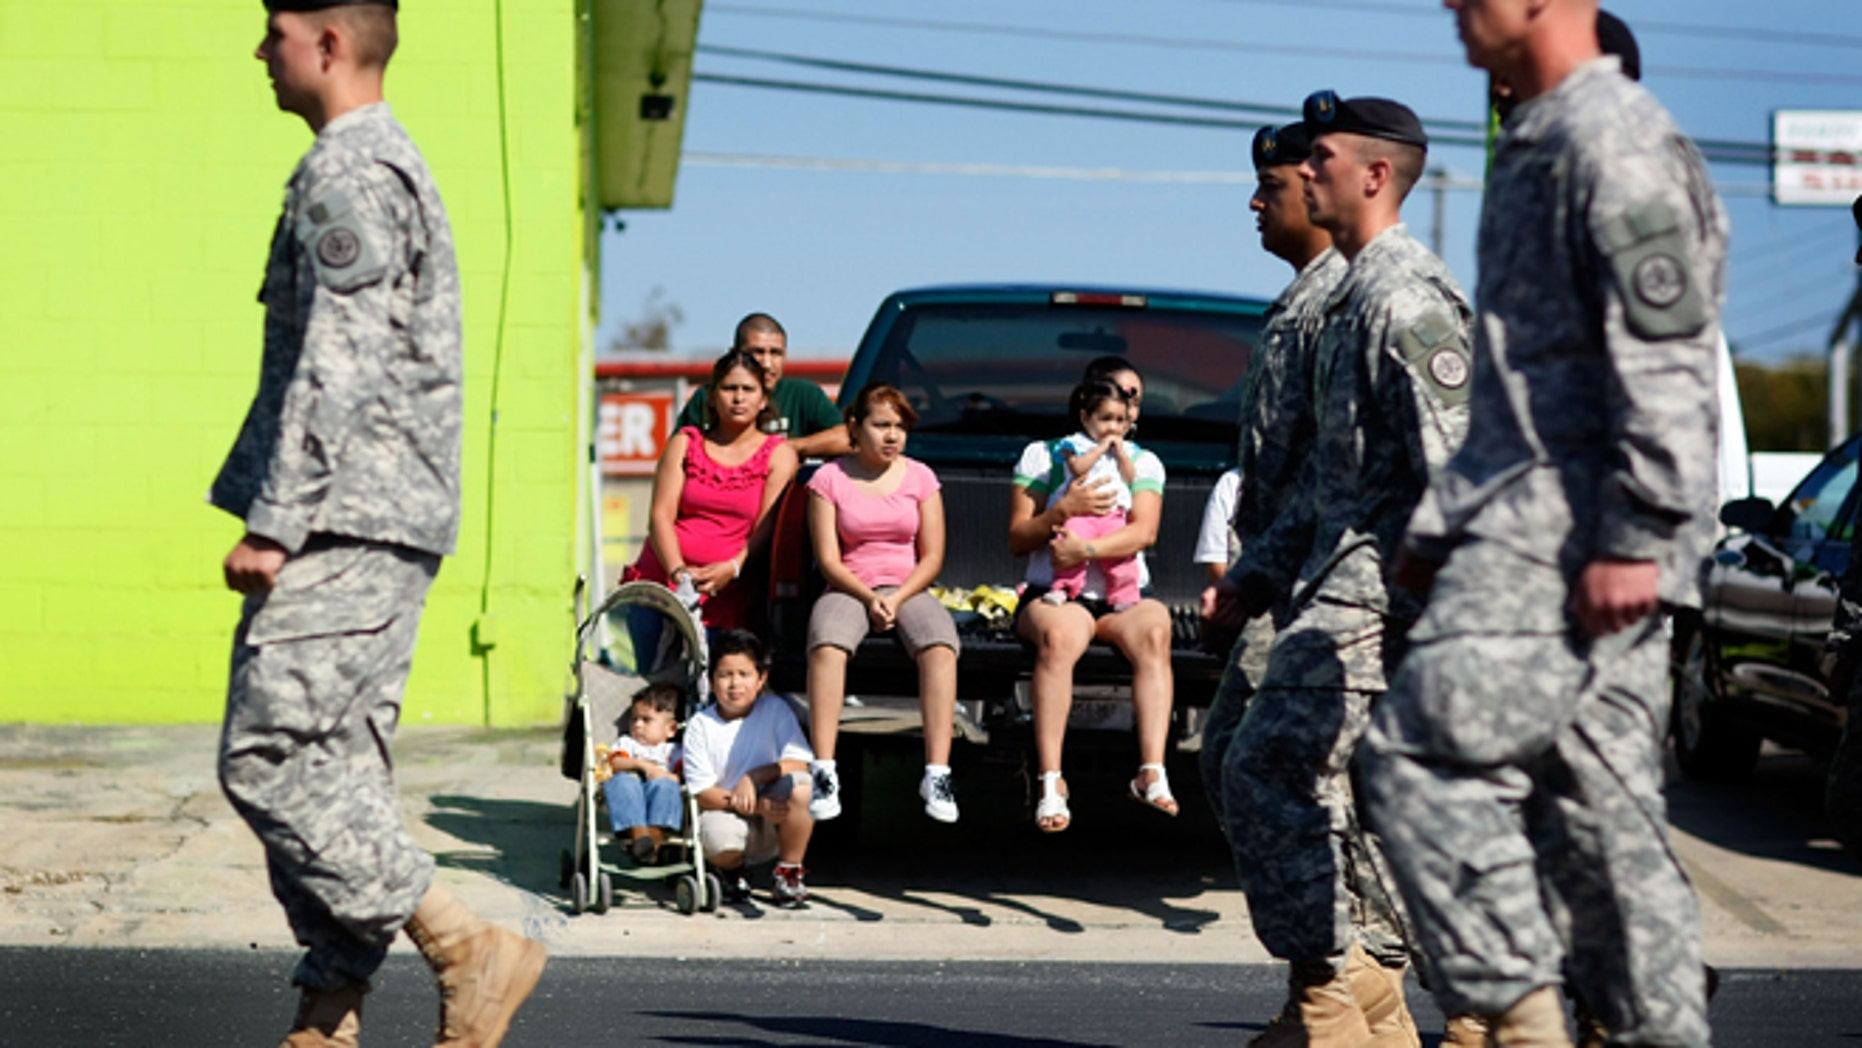 U.S. Army soldiers from Fort Hood march in a Veterans Day parade through downtown in Killeen, Texas.